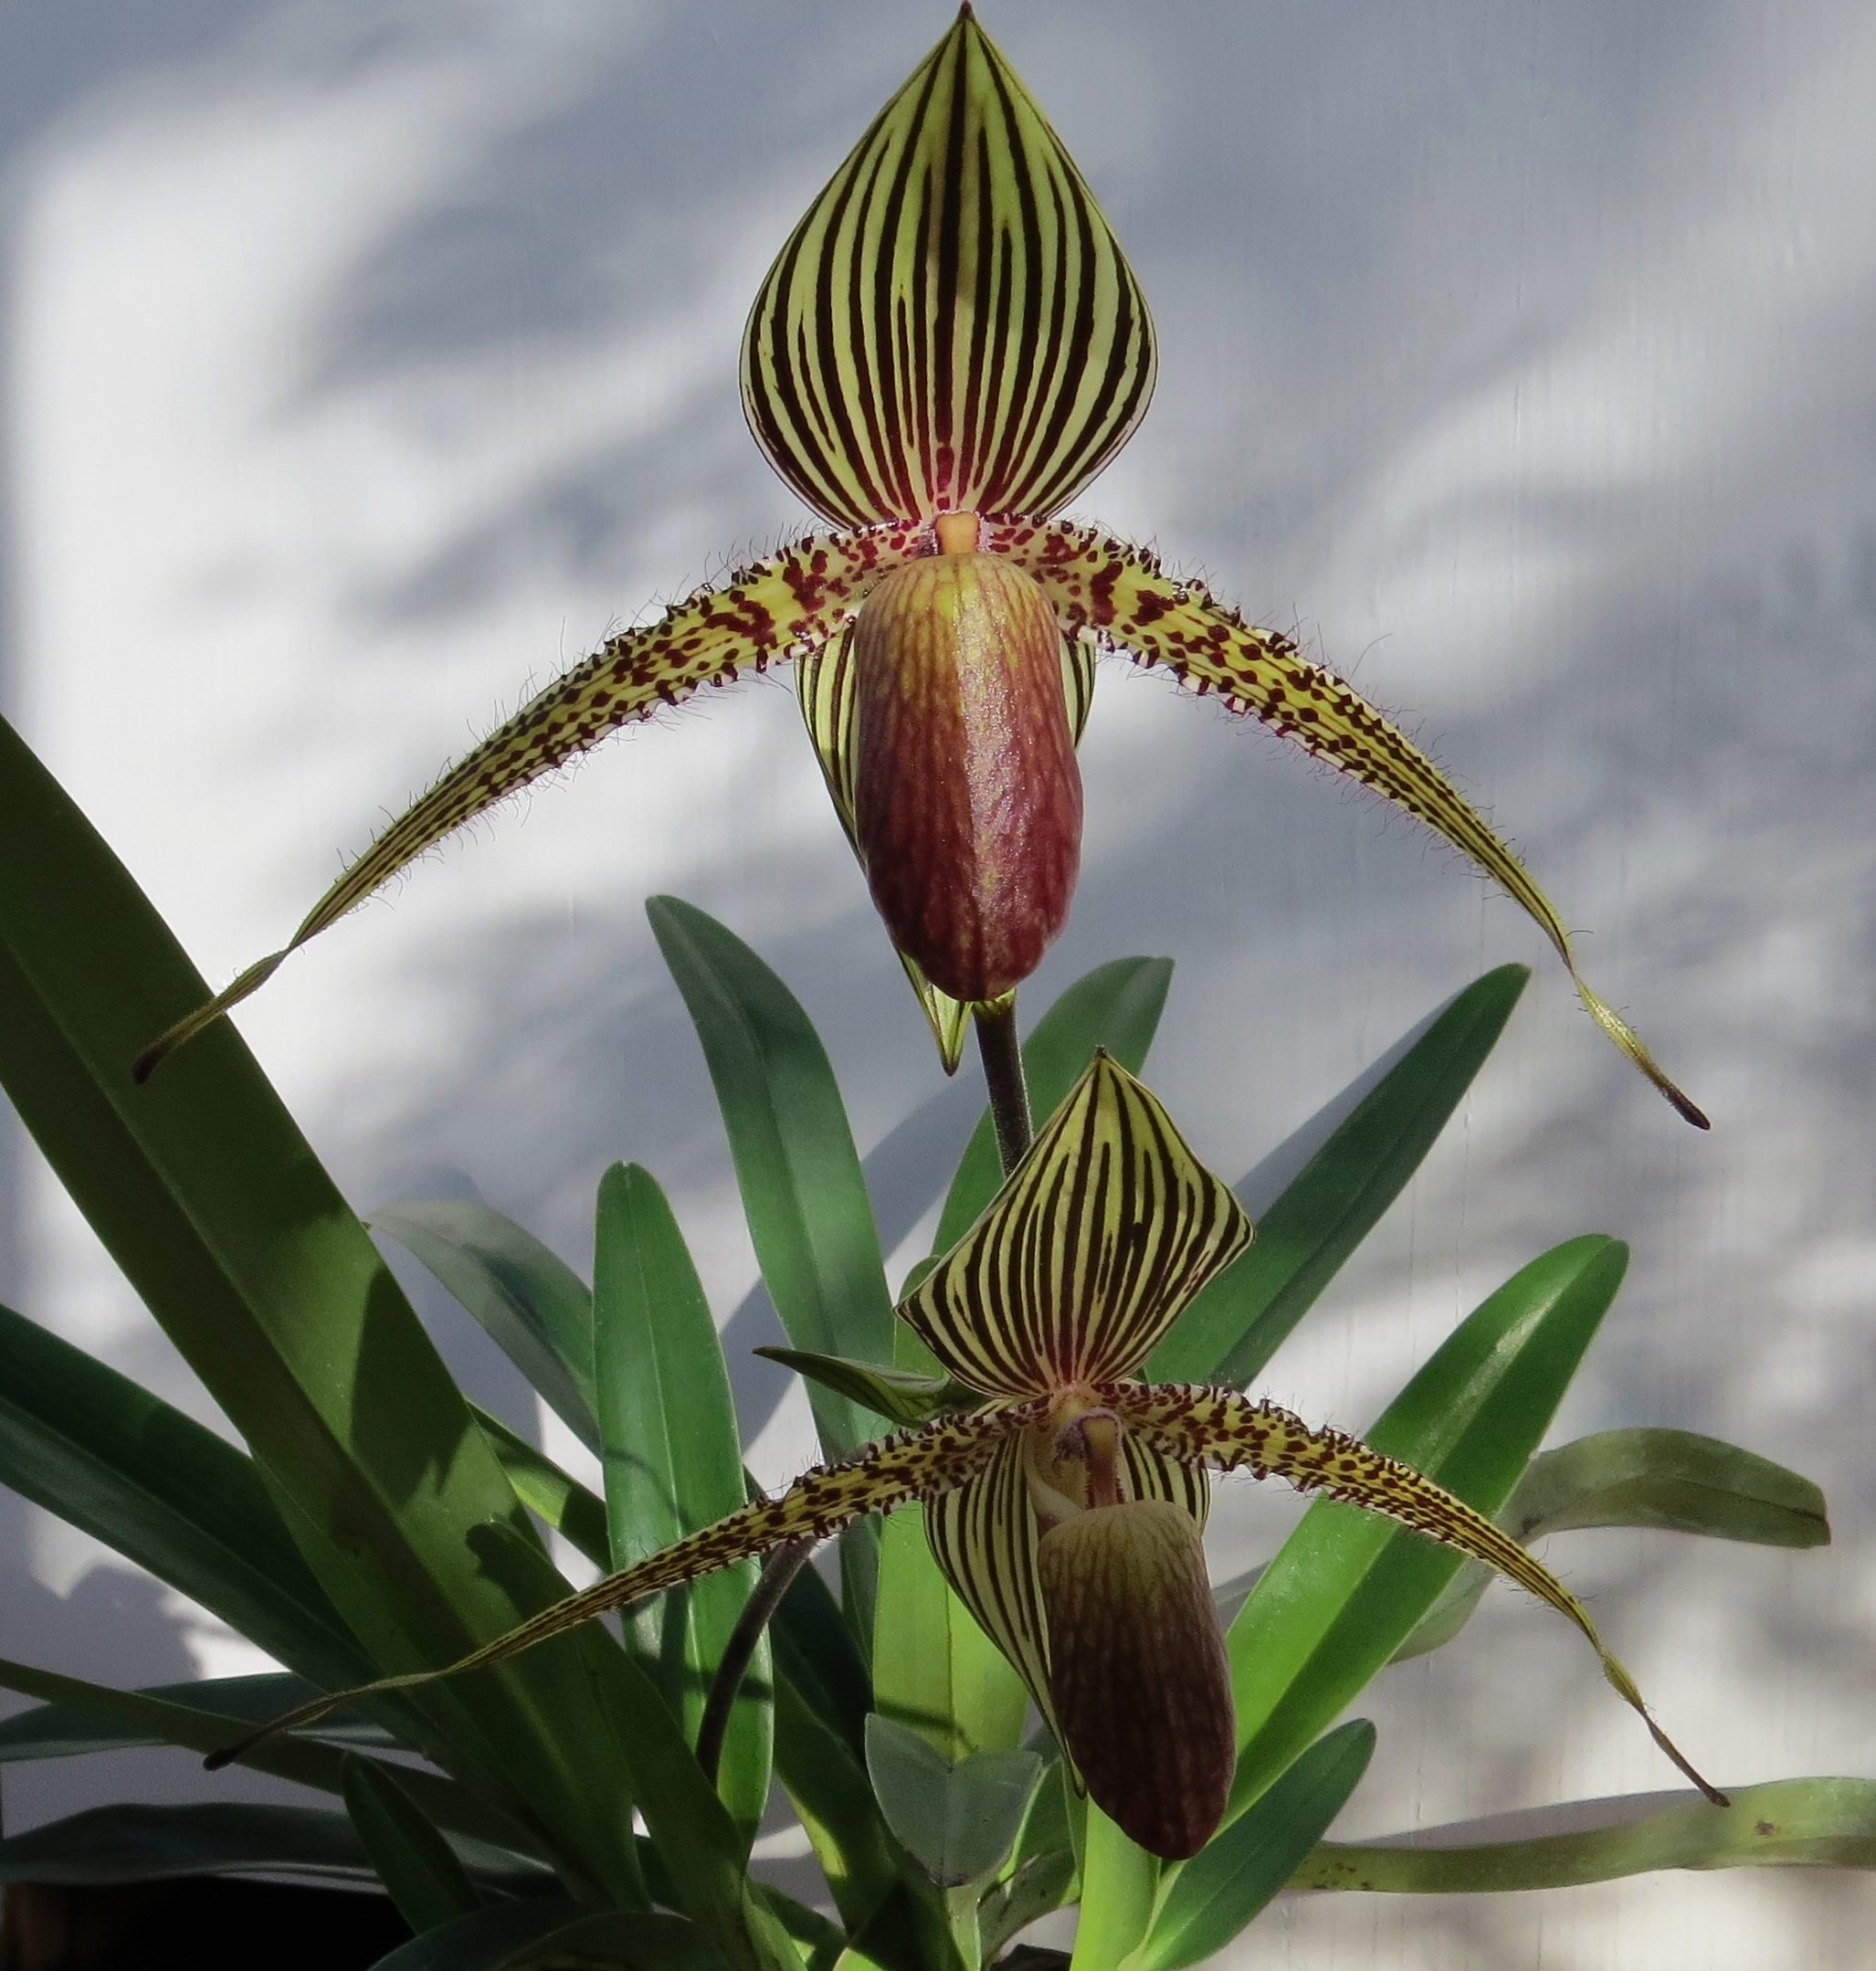 Image of Rothshild's slipper orchid